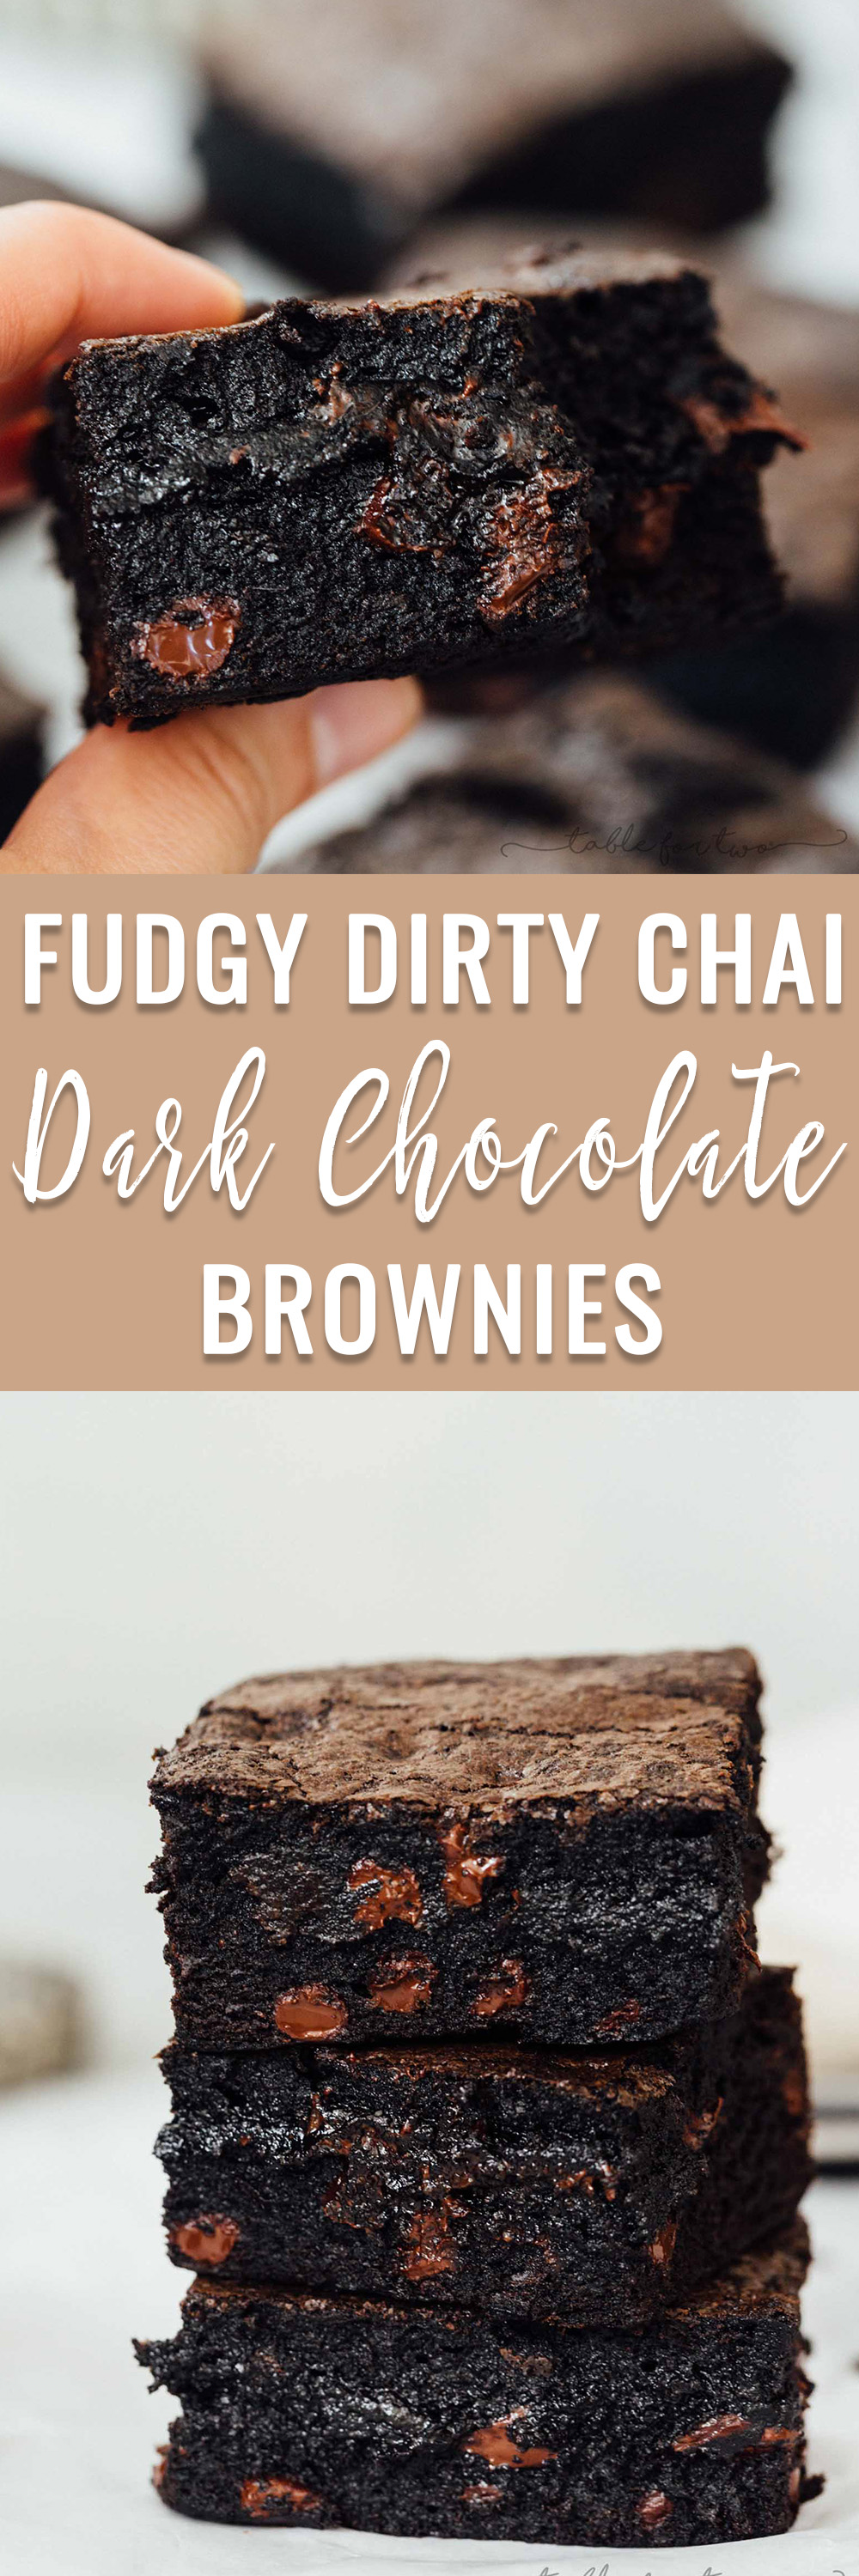 These exceptionally decadent and fudgy dirty chai dark chocolate brownies will elevate your brownie experience. You won't be able to resist just one! The hardest part is waiting for them to bake and then cool!